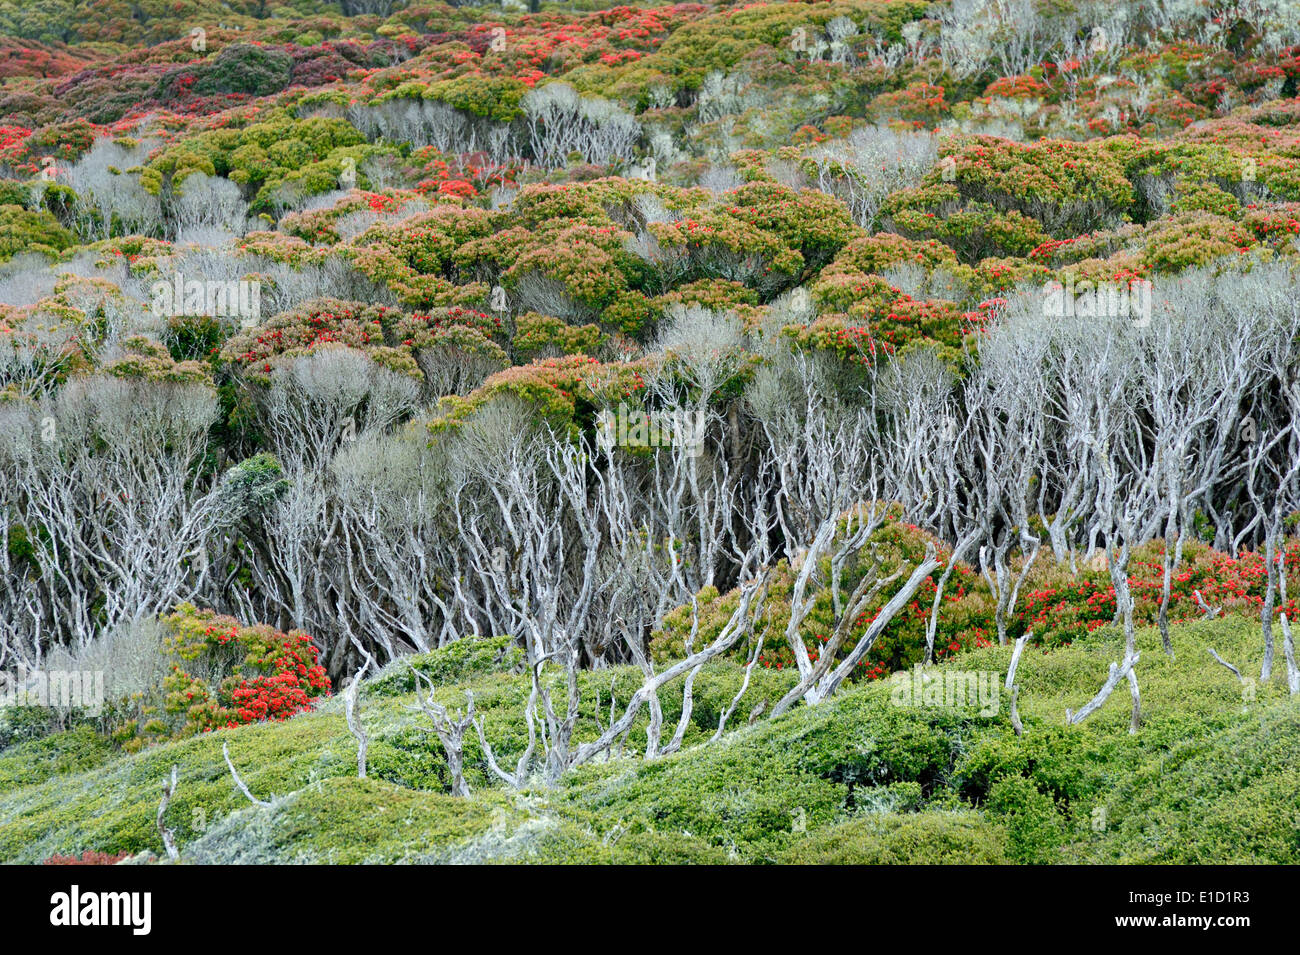 View of a Sub-antarctic forest, blooming in summer. - Stock Image